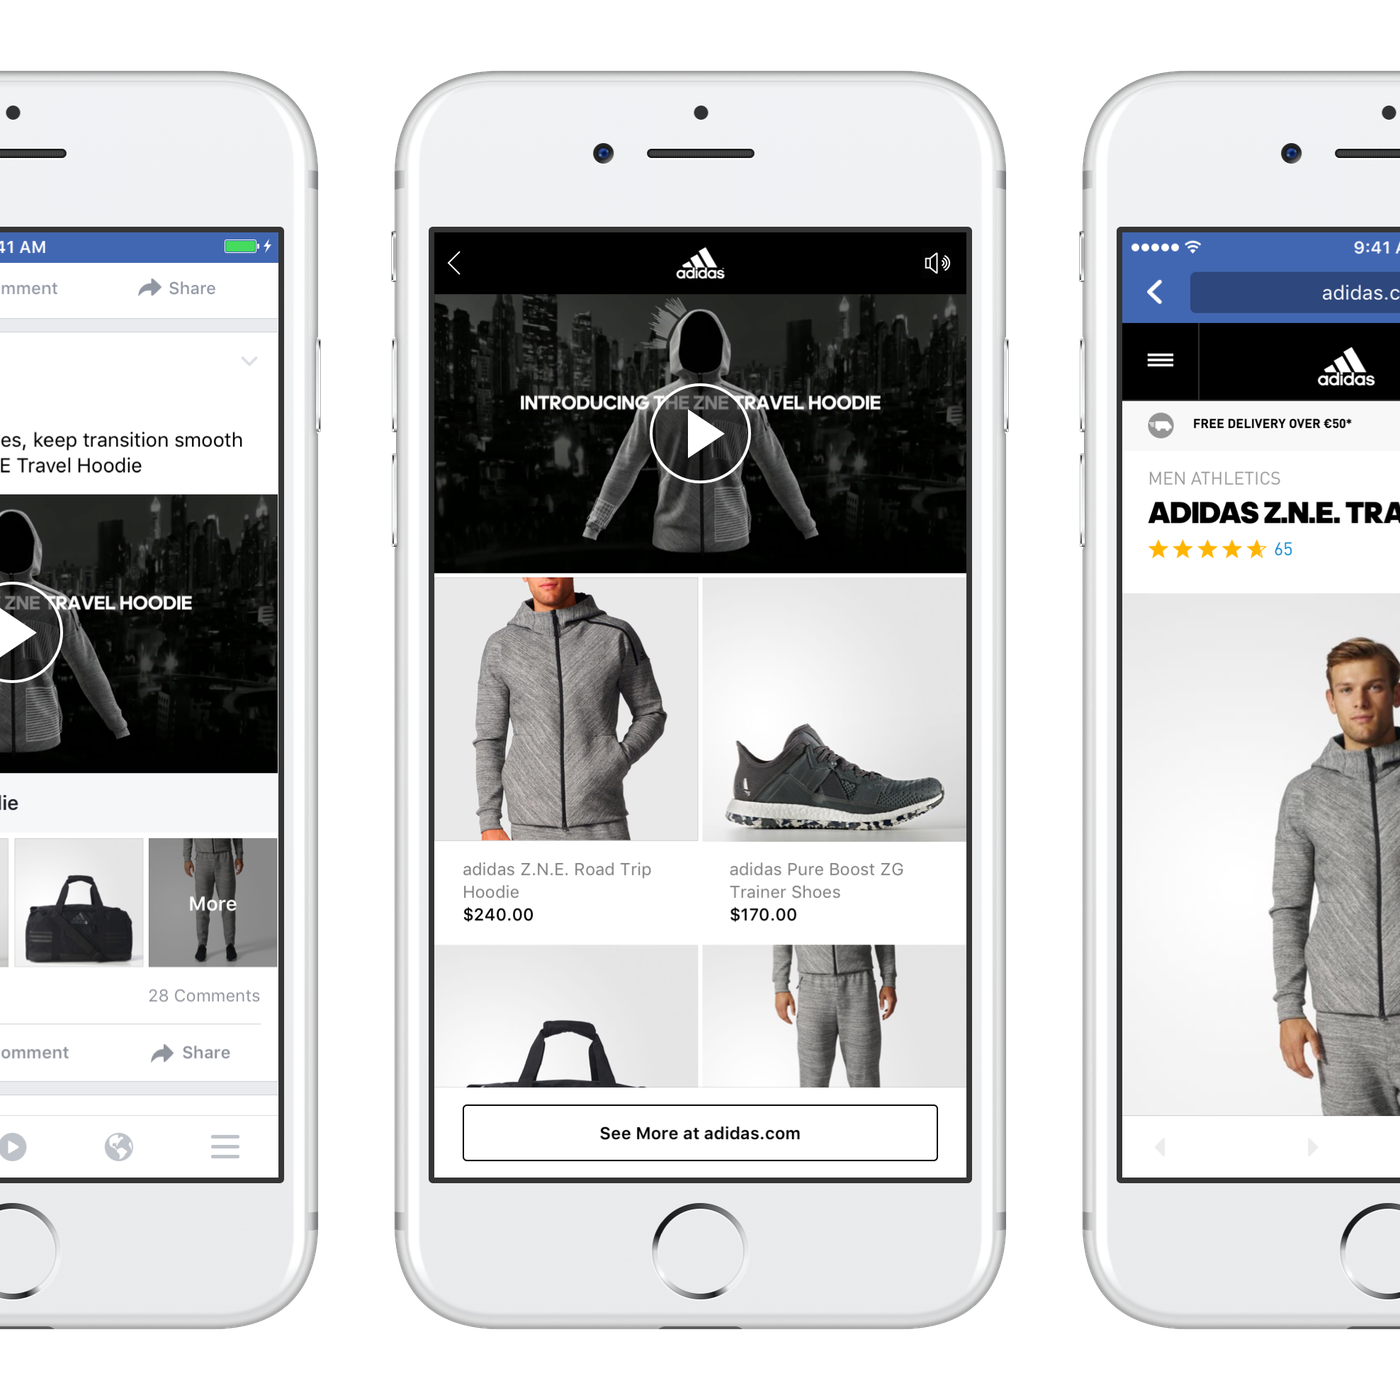 Facebook has a new type of video ad meant to get people